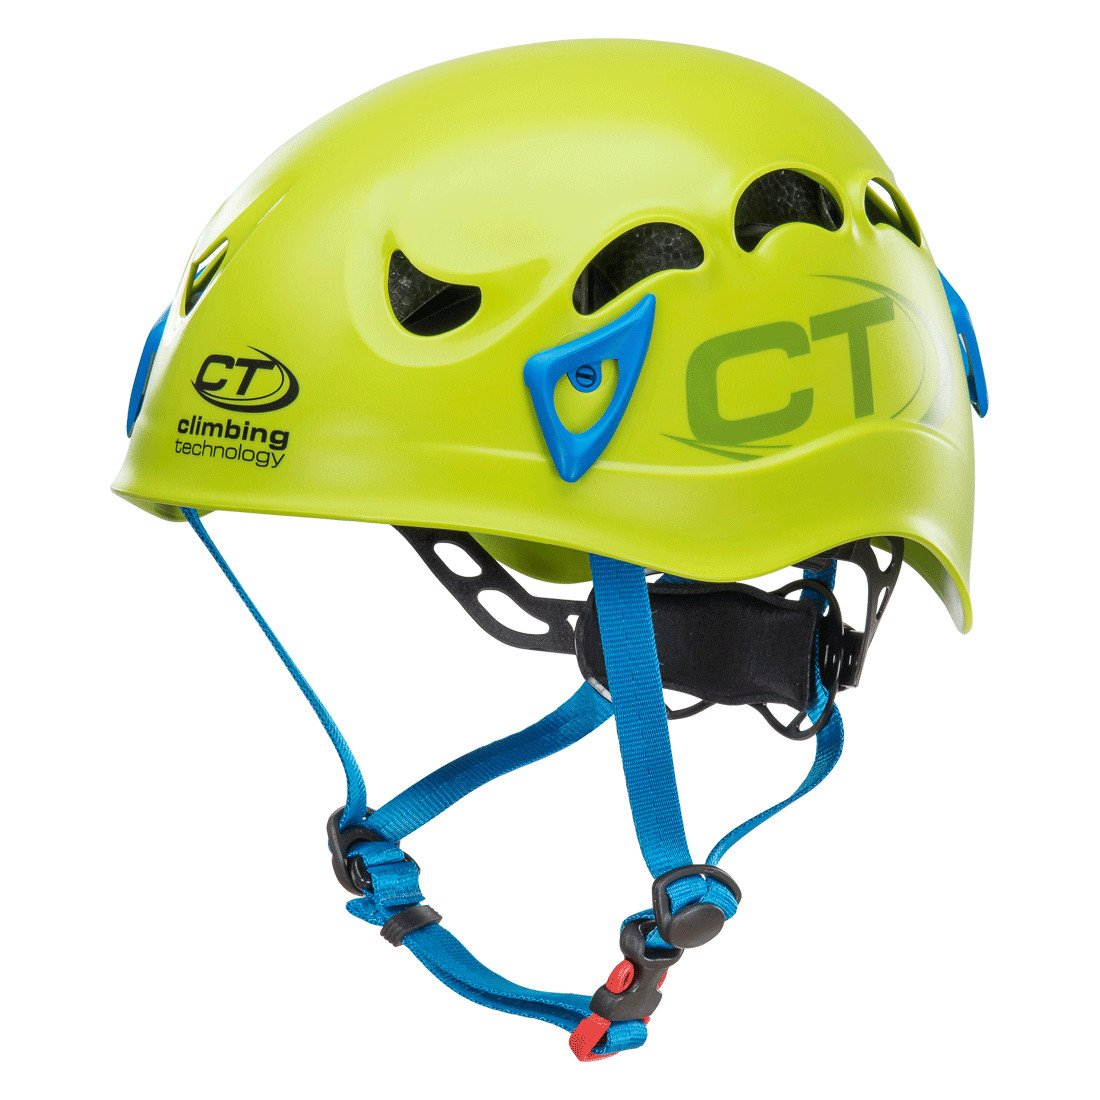 Climbing Technology Galaxy climbing helmet, in green and blue colours